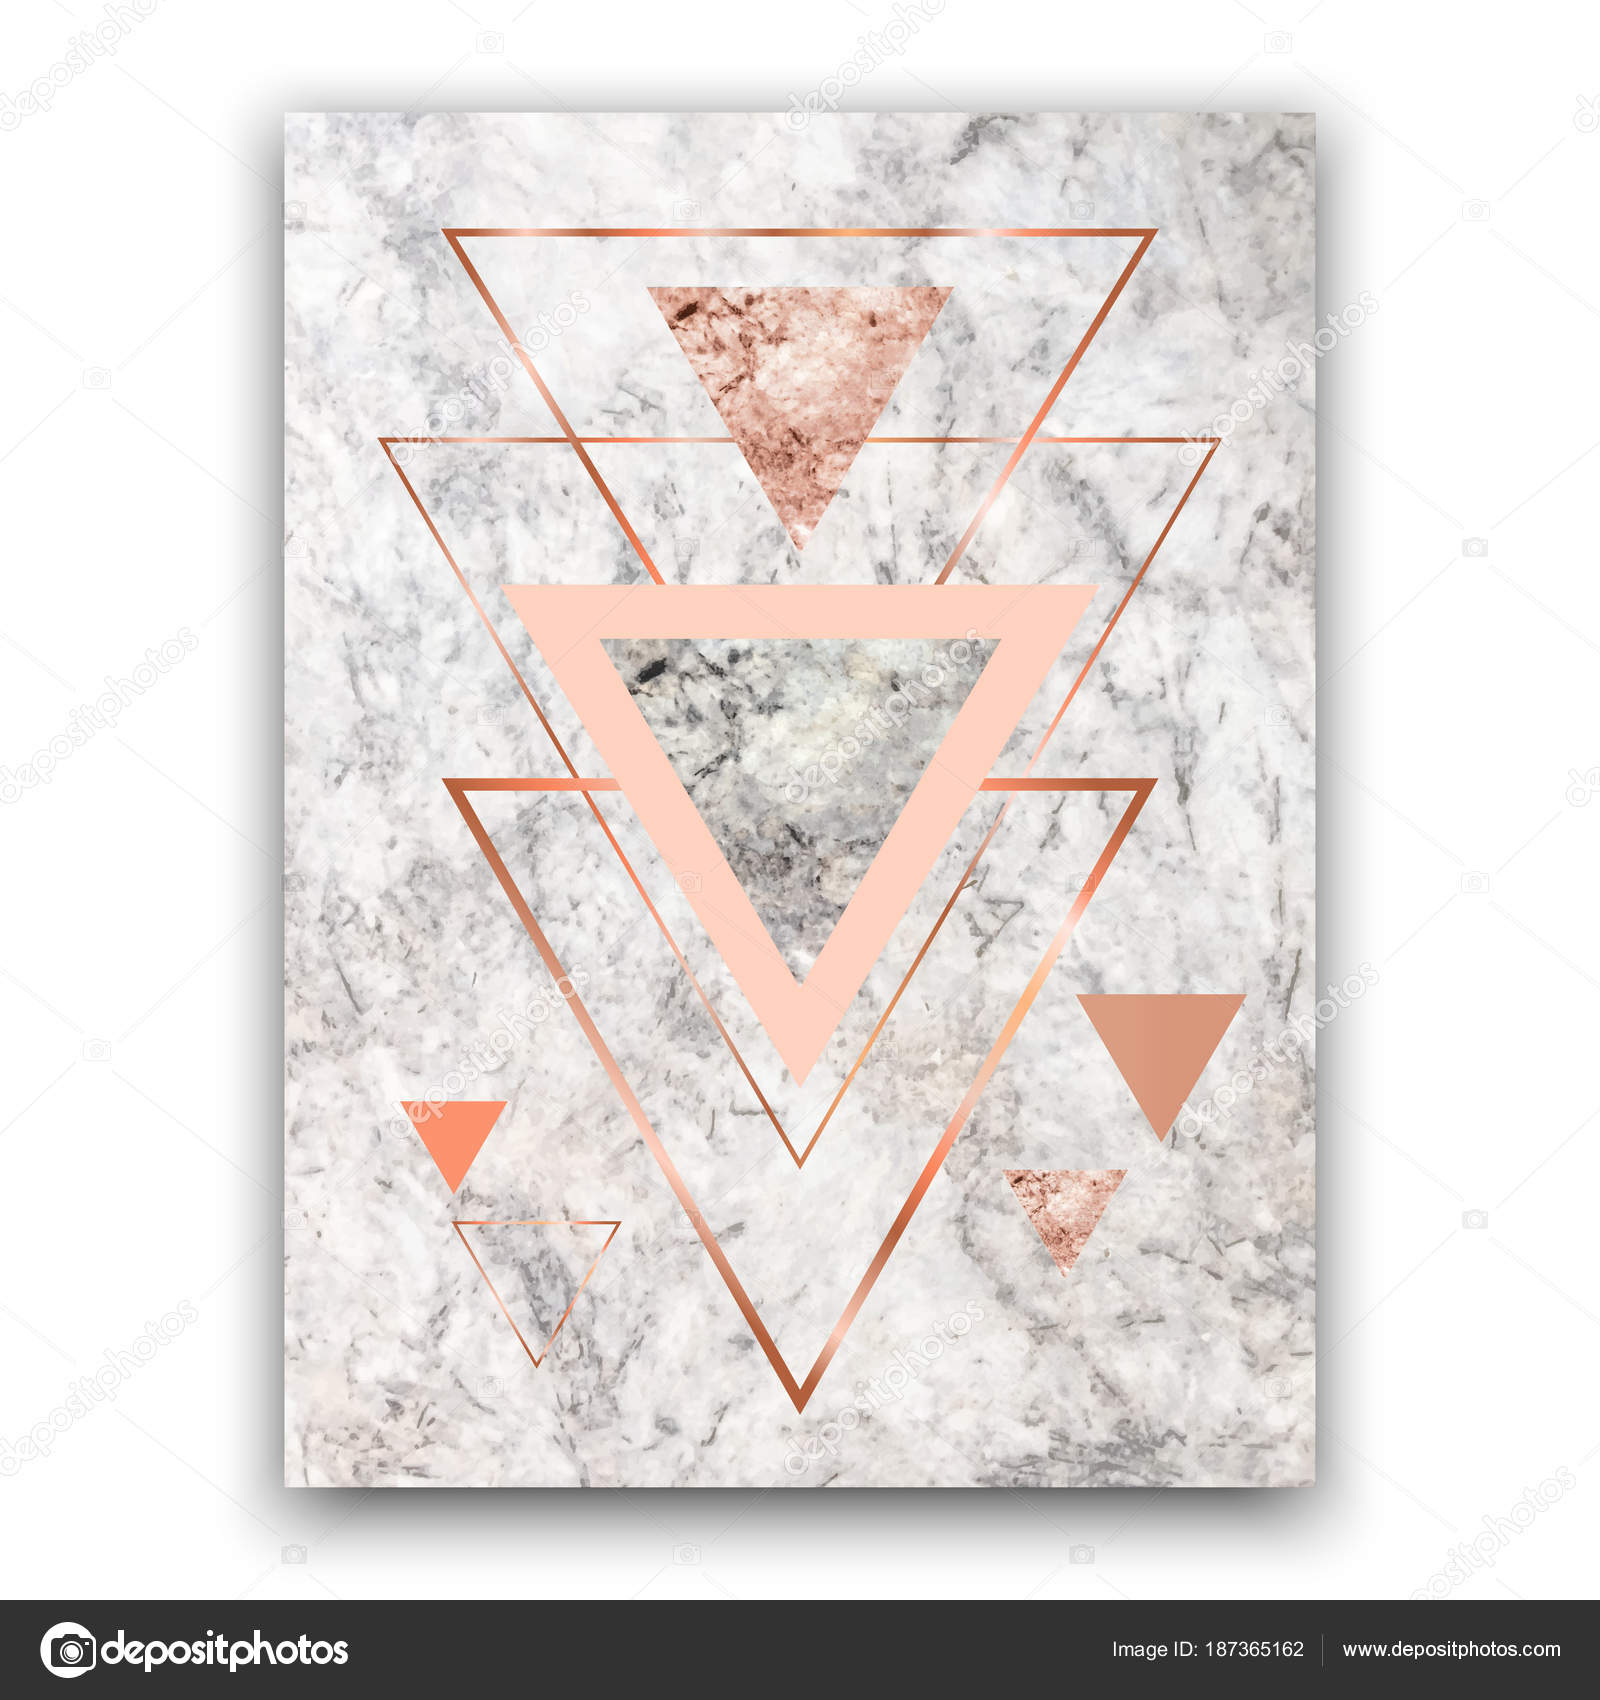 ᐈ Rose Gold Glitter And Marble Wallpaper Stock Vectors Royalty Free Rose Gold Marble Illustrations Download On Depositphotos